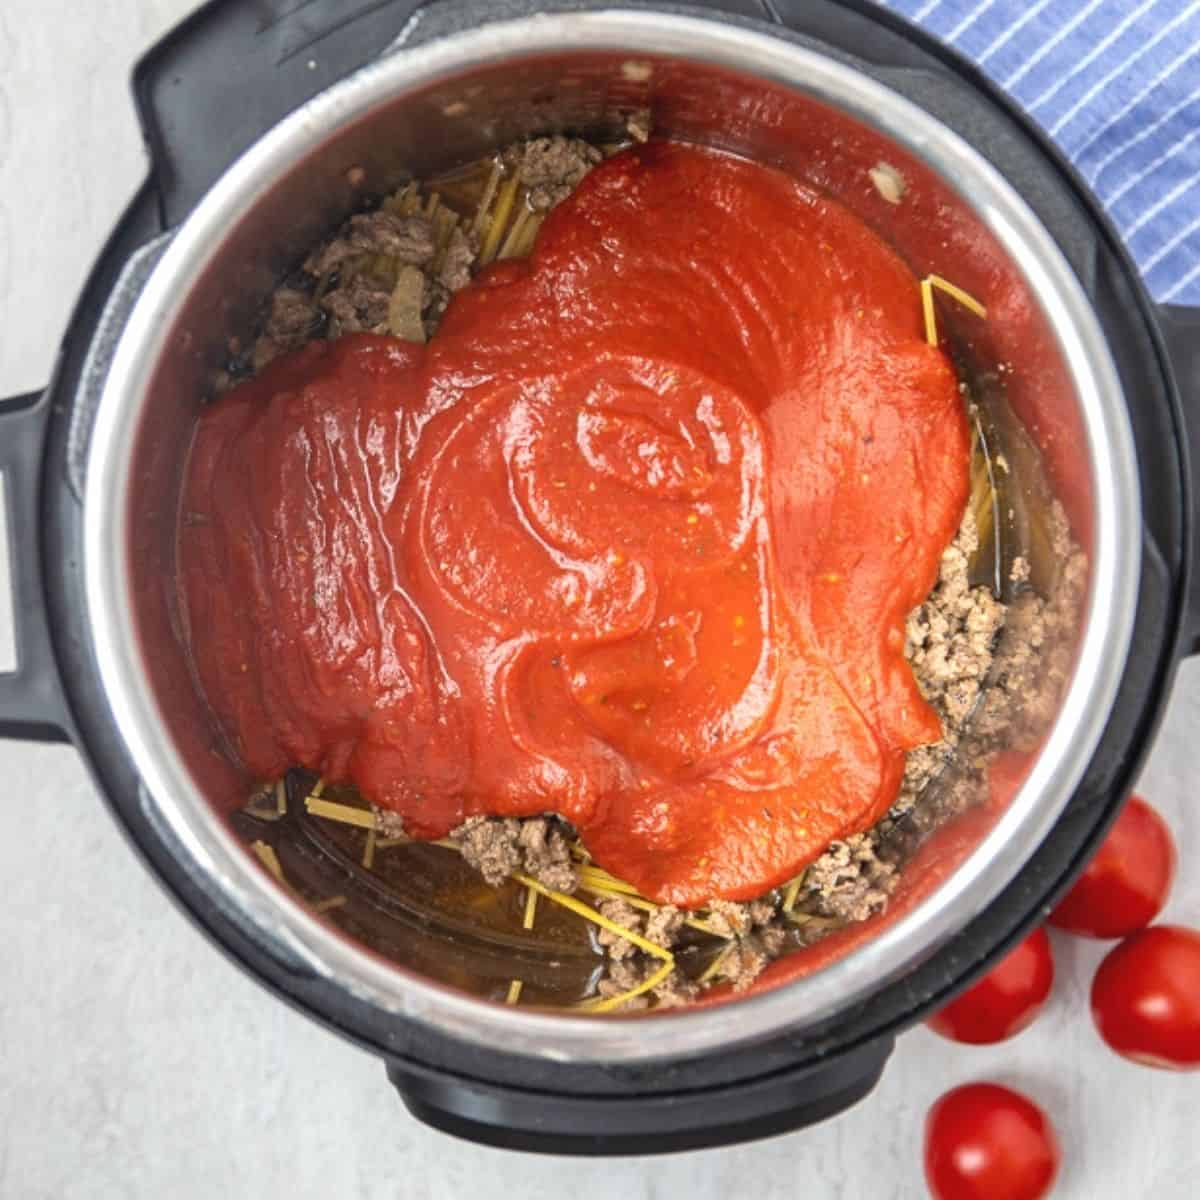 Noodles, meat, and sauce layered in Instant pot.